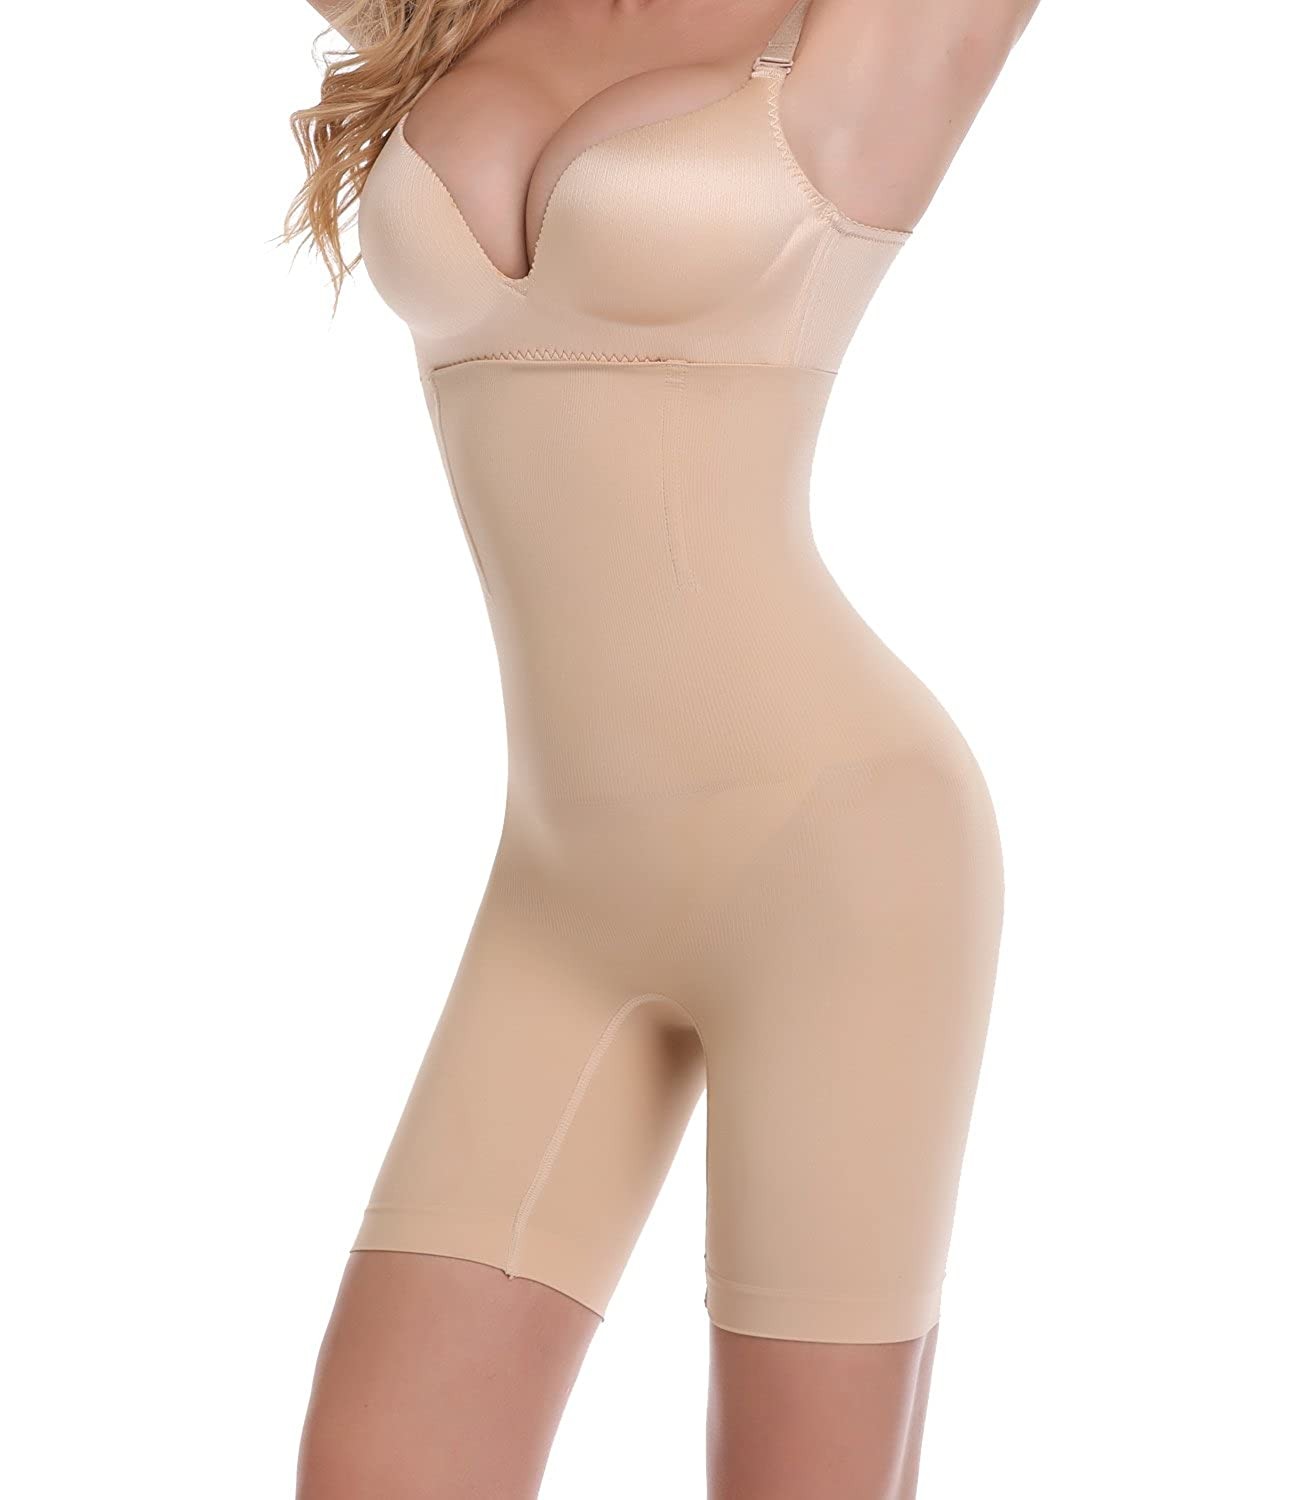 SEXYWG Butt Lifter Panties Padded Enhancer Shapewear Tummy Control Body Shaper SGSF5618-CA